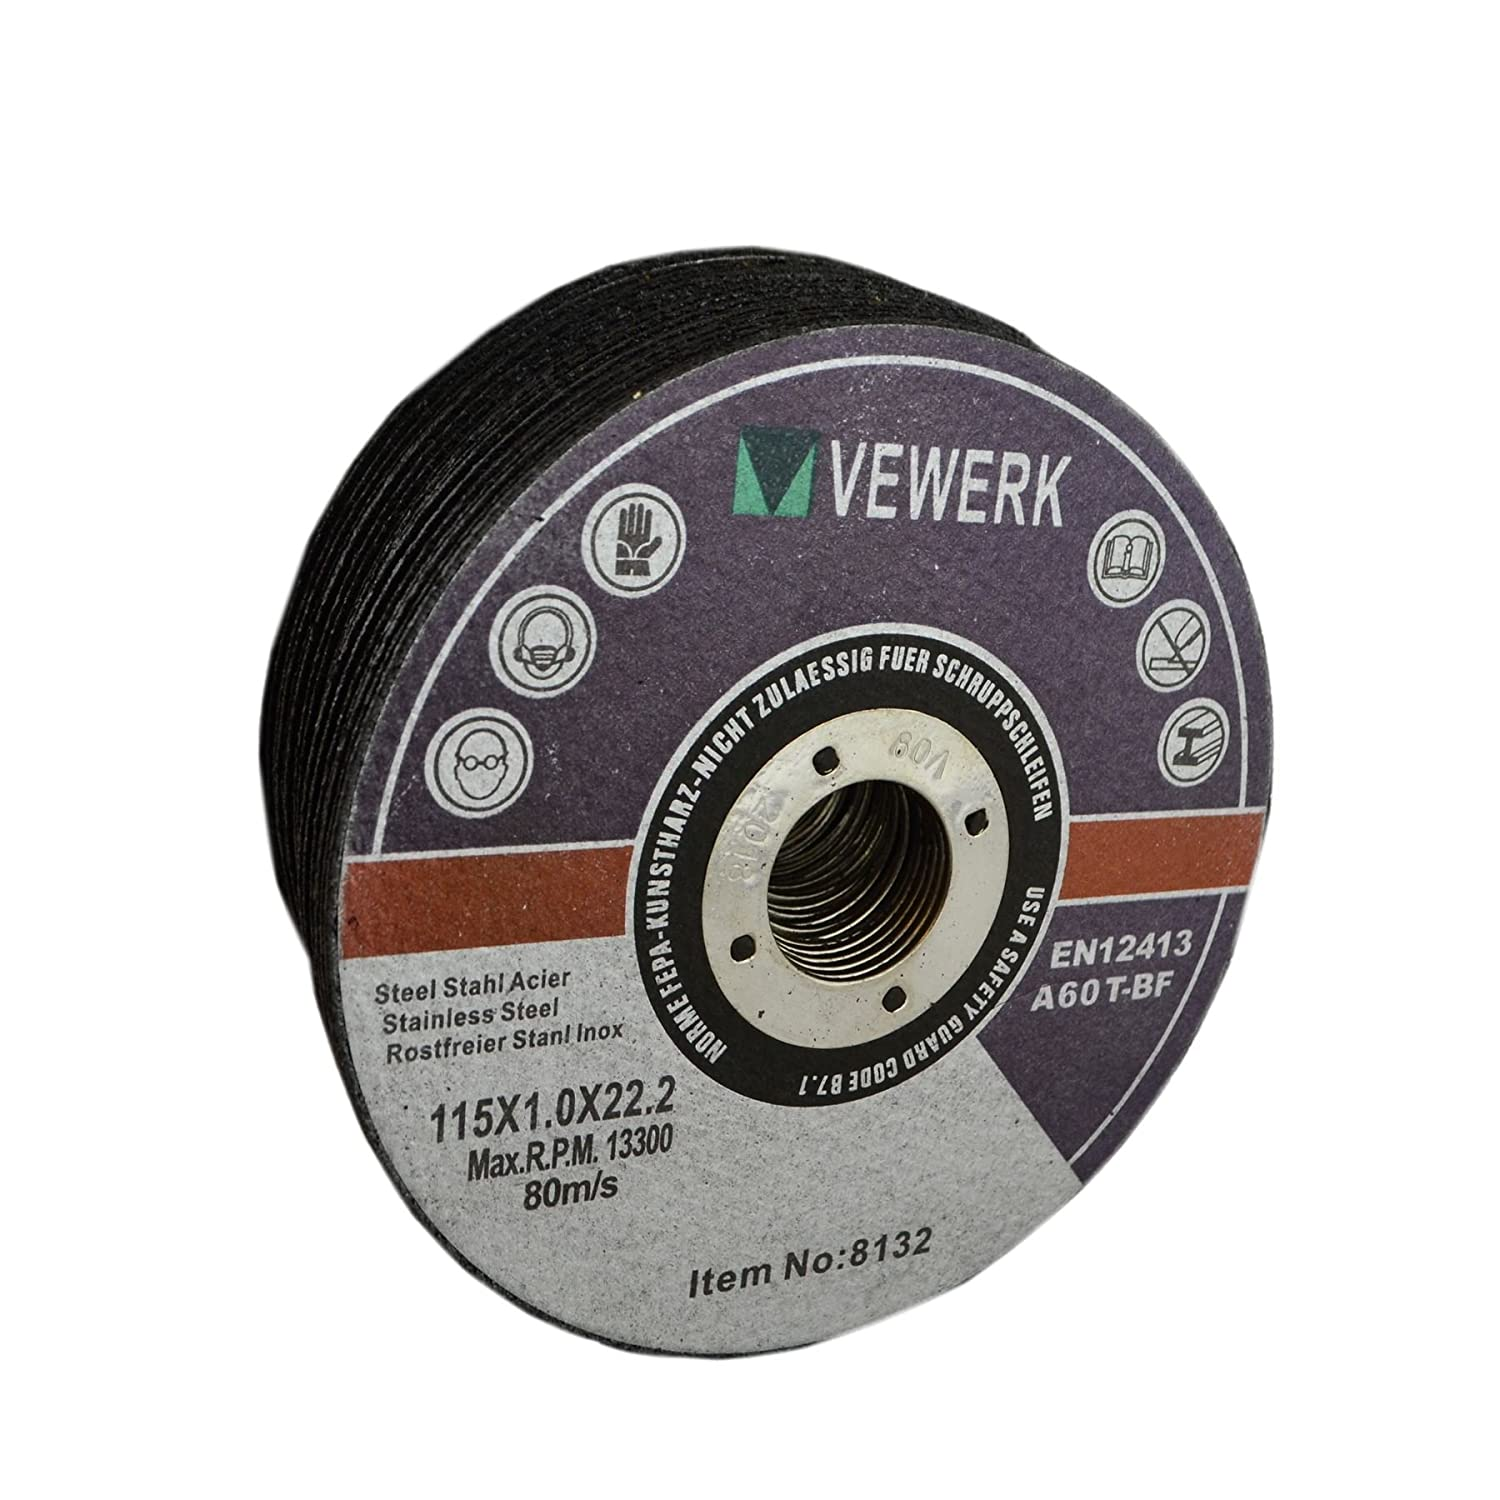 Thin Metal Steel Cutting Discs For 4-1/2' Angle Grinder 115mm x 1mm Pack of 25 AB Tools